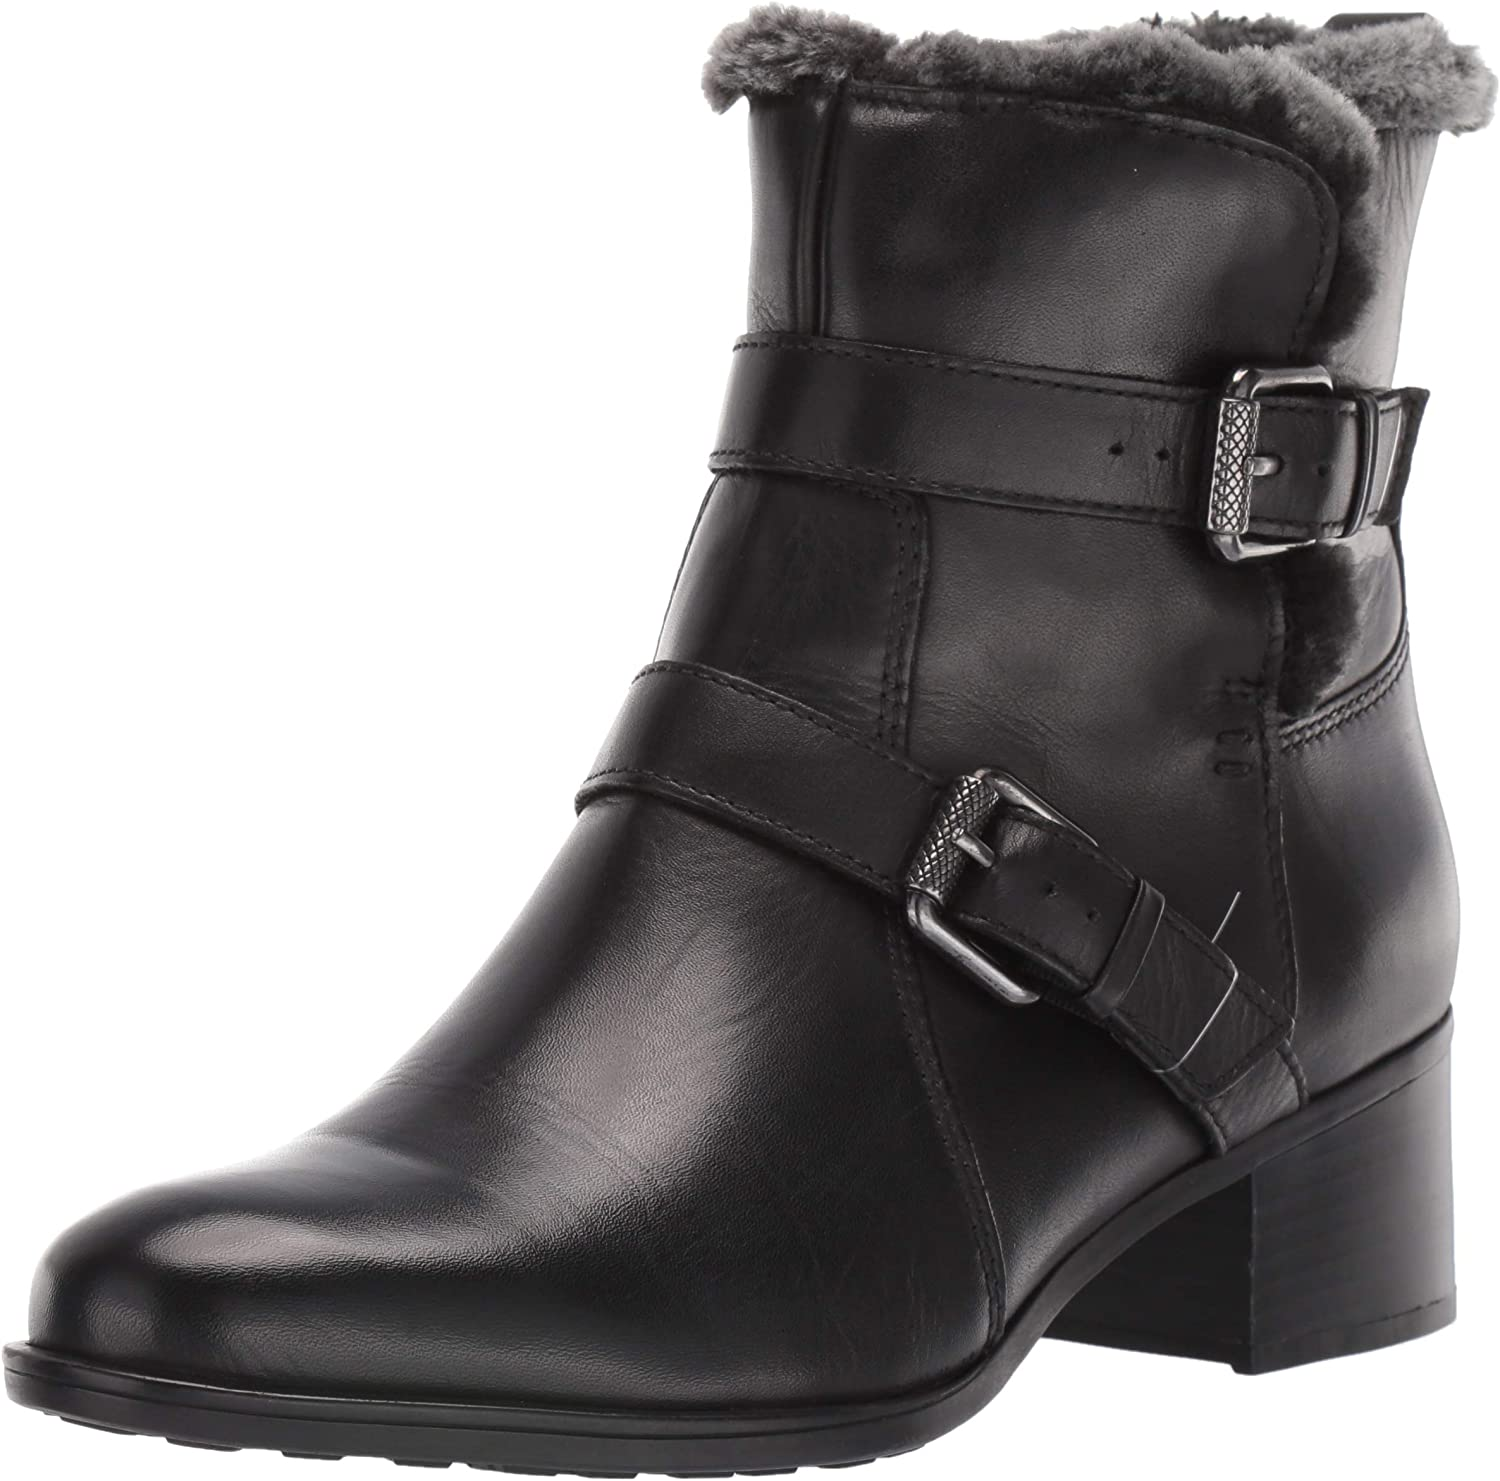 Naturalizer Women's Max 88% OFF Deanne Booties Boot supreme Ankle